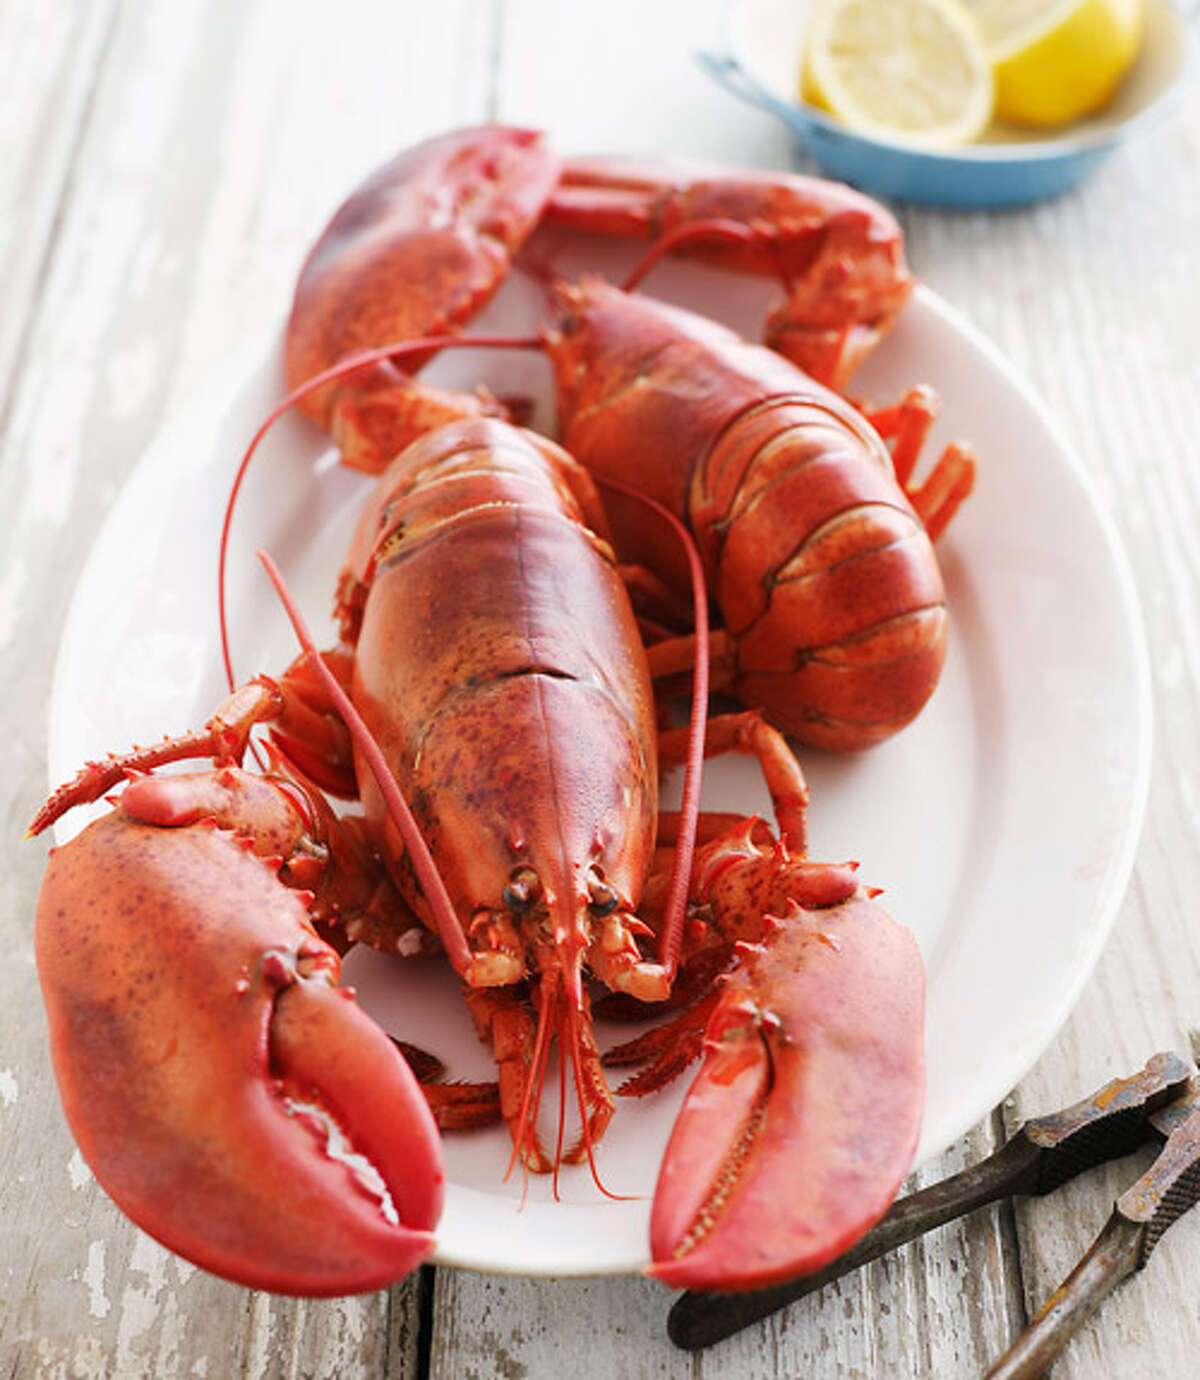 Sure, part of its appeal is the special-occasion nature, not to mention all that licking of butter off your fingers. But you may eschew this crustacean in fear that a heavy, fatty meal will slow you down sexually. Turns out, lobster doesn't deserve its tag as a high-fat food (except when slathered in said butter!). In fact, it's a good source of lean protein, copper, zinc and selenium. Zinc, in particular, has been linked with a healthy male libido, says deVillers. Lobster is also chock full of the mineral phosphorus, which boosts both your sex drives, says Balleck. Plus, its concentration of essential fatty acids may increase sensitivity in your sex organs.More from Woman's Day: 10 Foolproof Ways to Get in the Mood